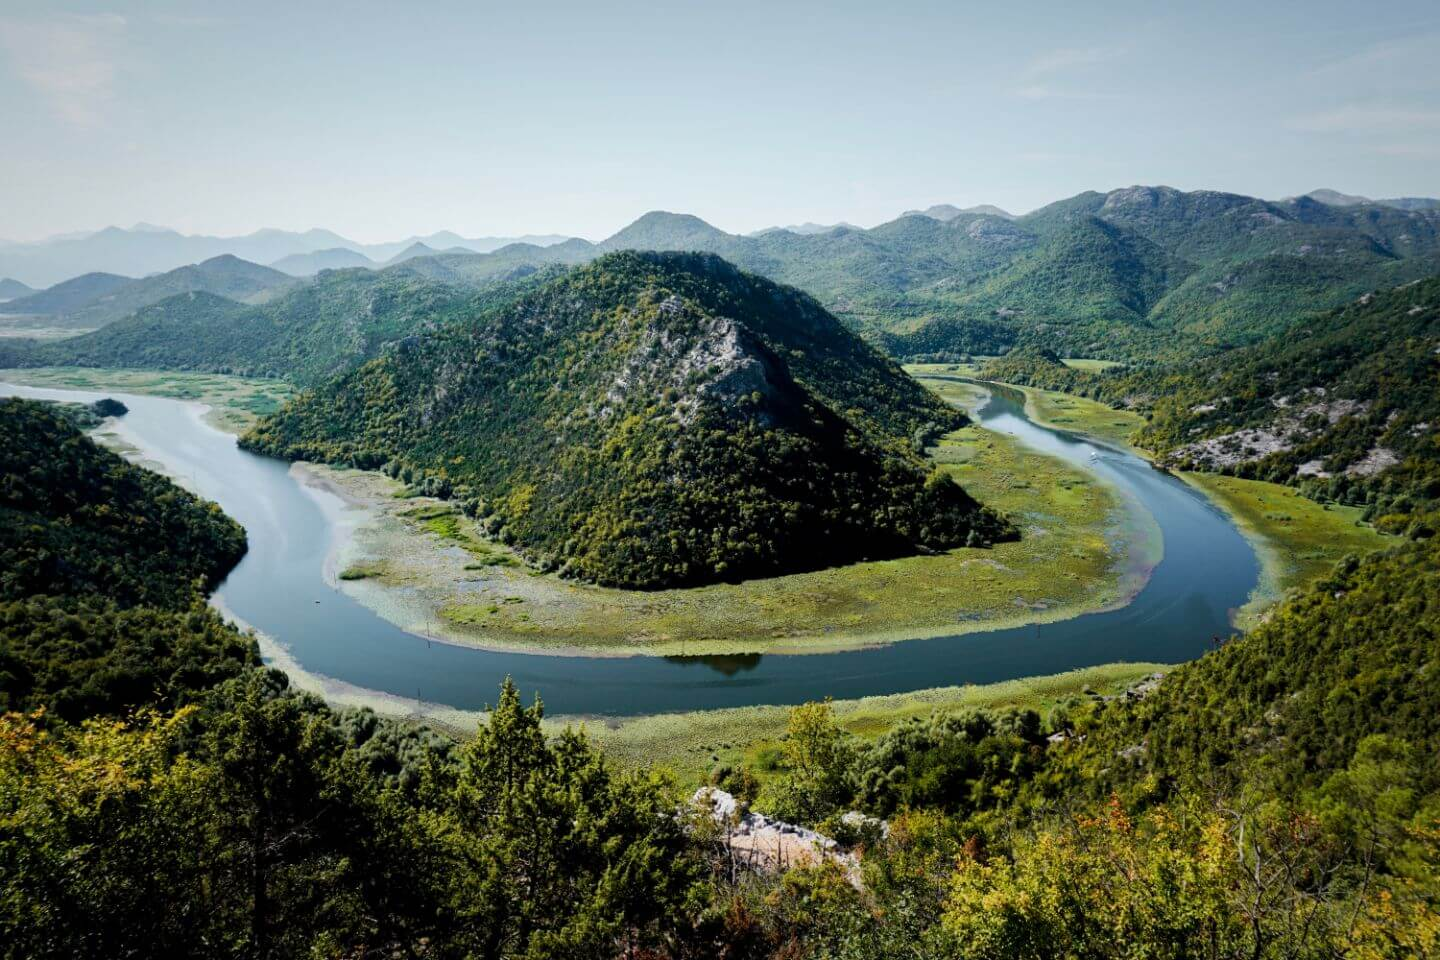 Pavlova Strana Viewpoint, Horseshoe Bend, Lake Skadar - Best Places to Visit in Montenegro